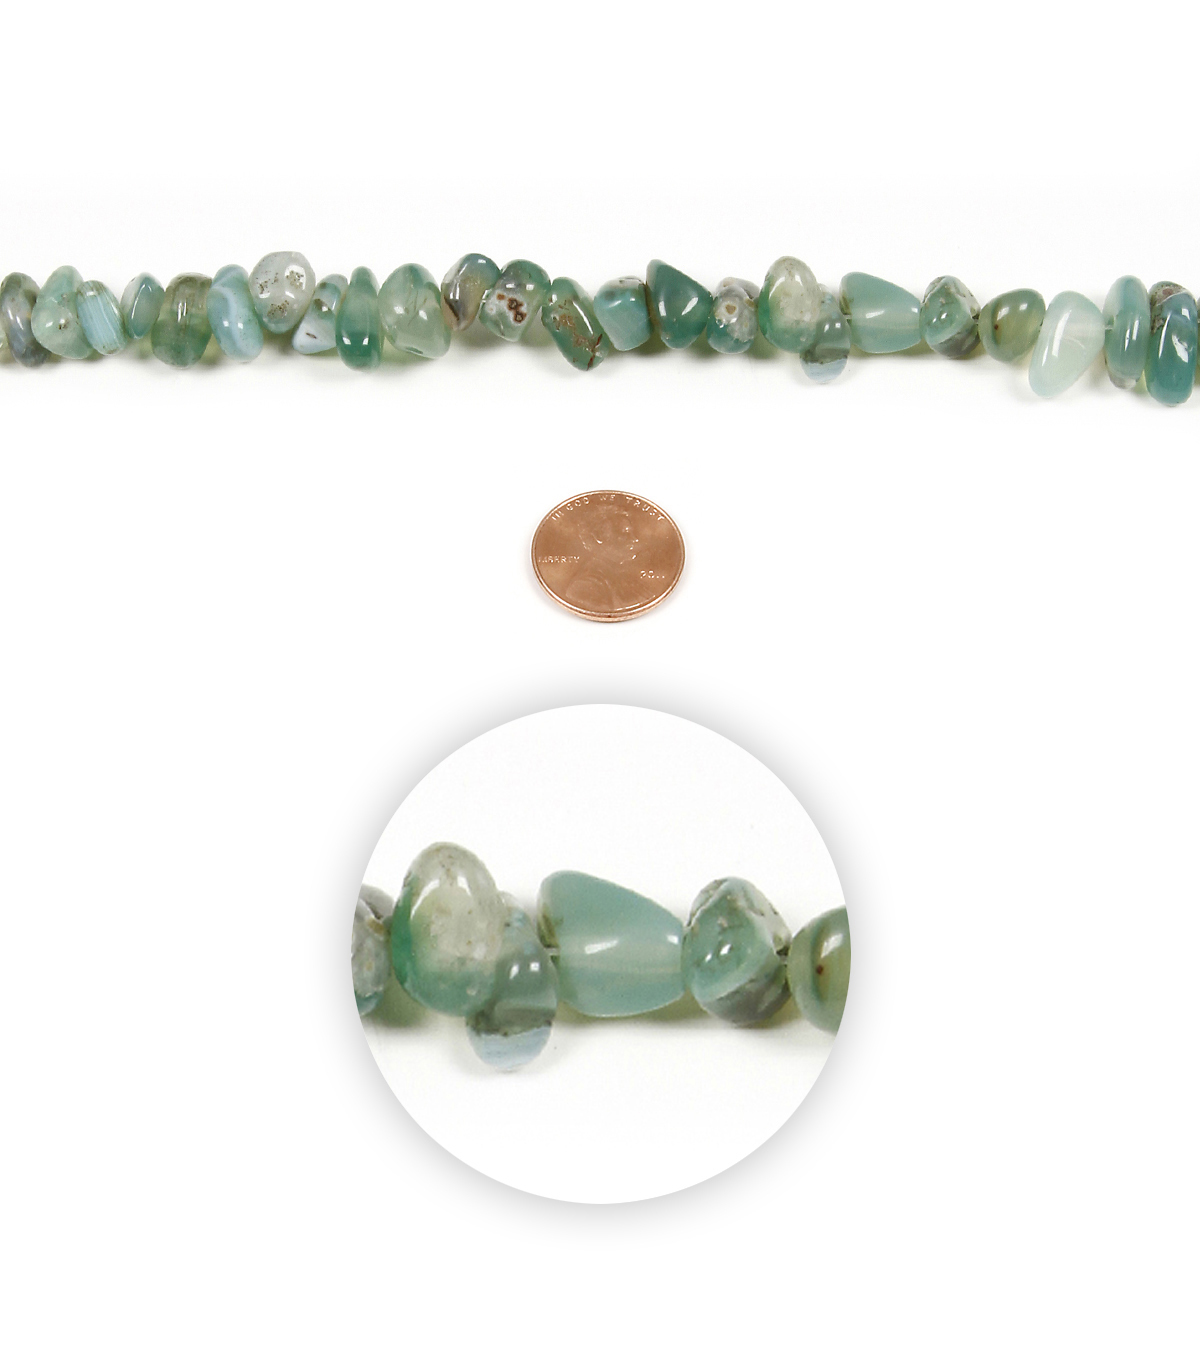 Strand Moss Agate Ngt